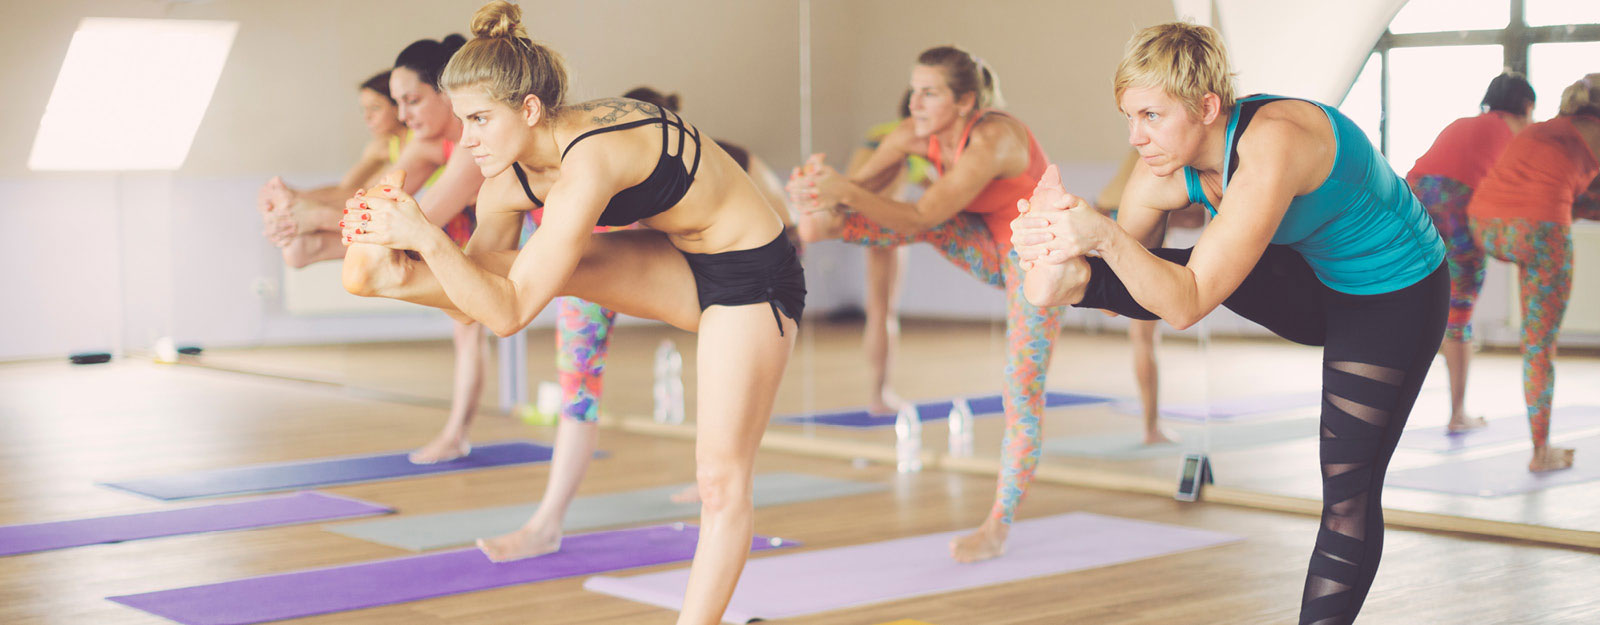 Hot Yoga Schedule Fremont Clubsport Health And Fitness Gym